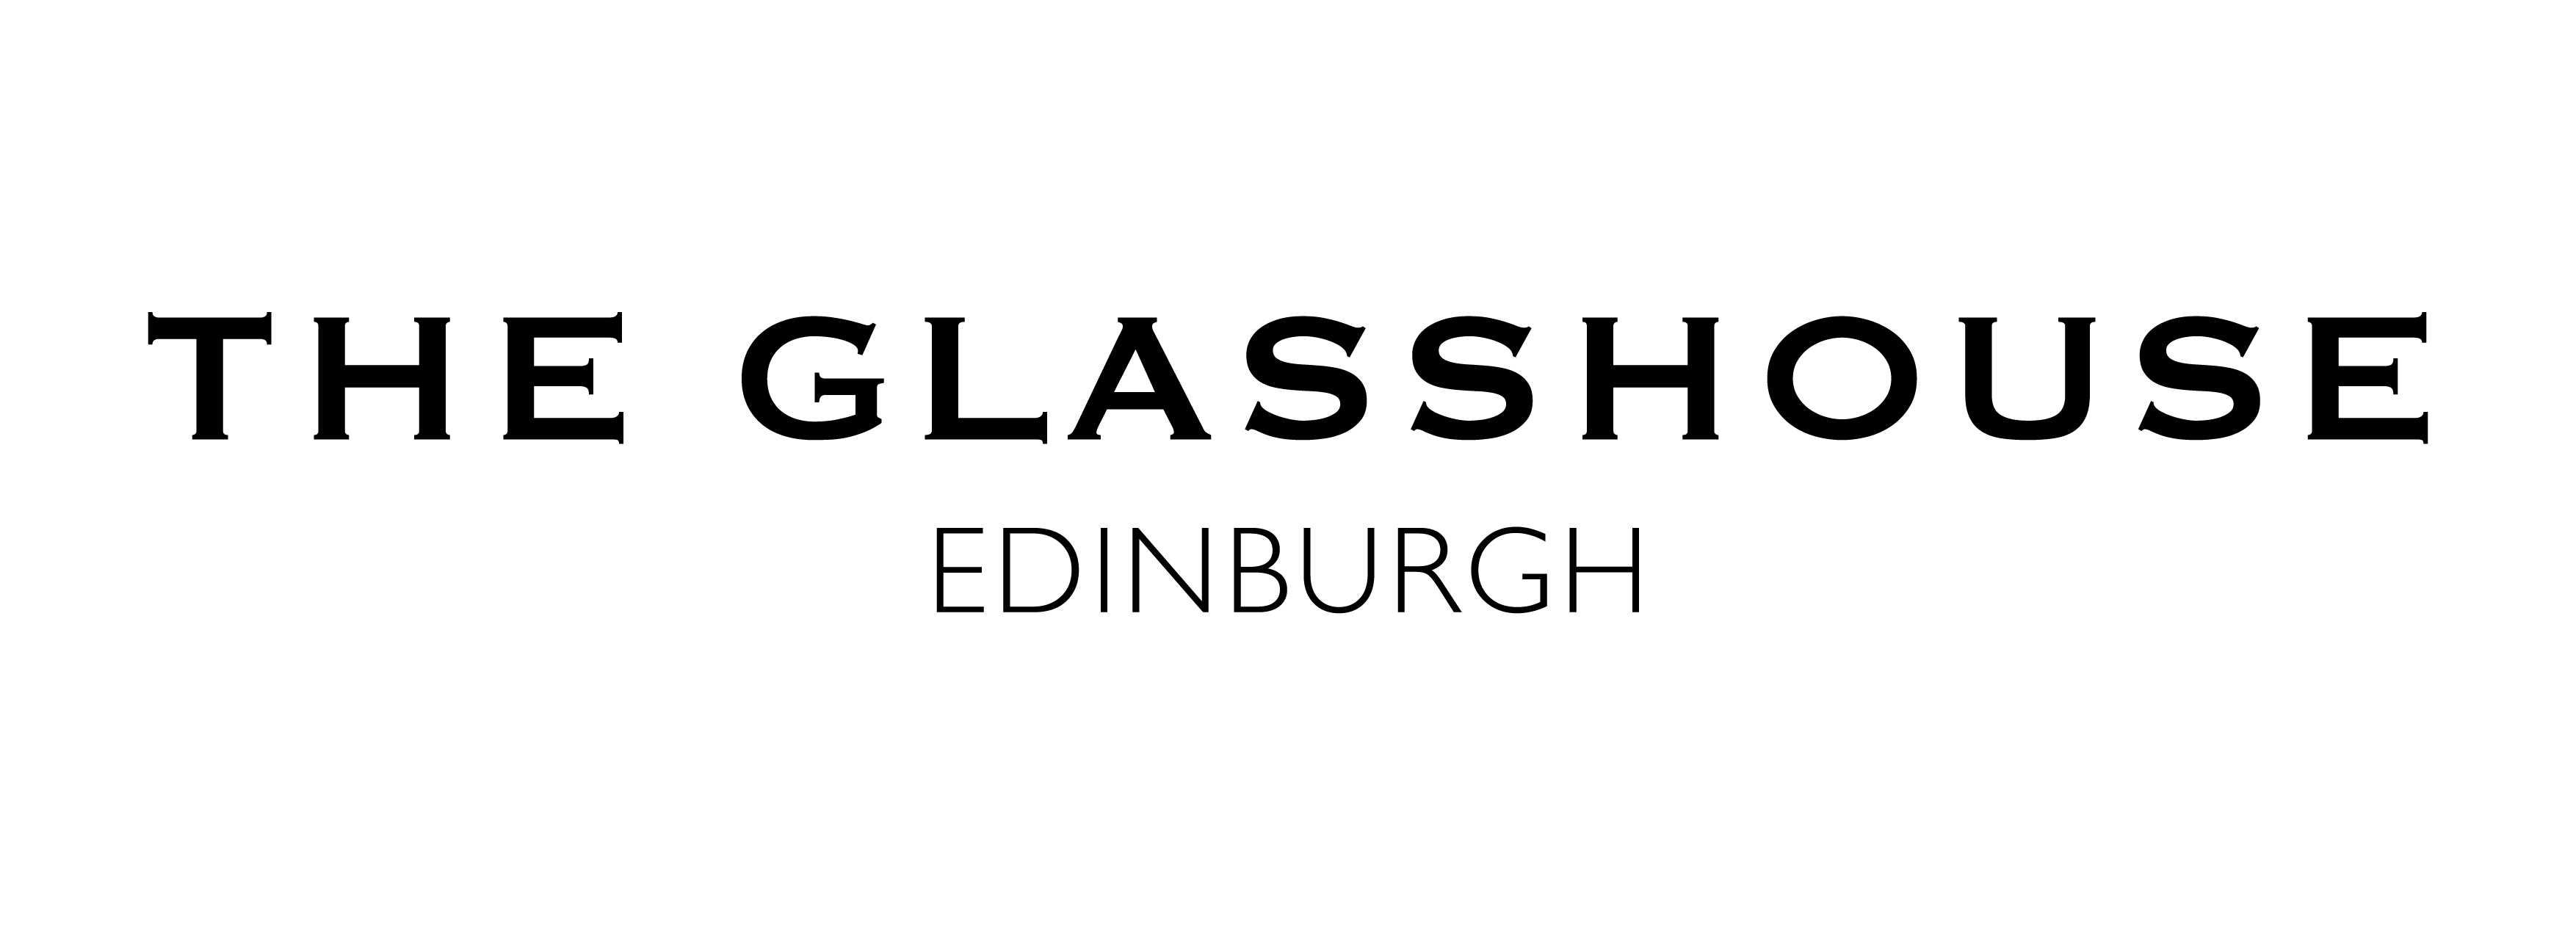 The Glasshouse share their feedback on events500